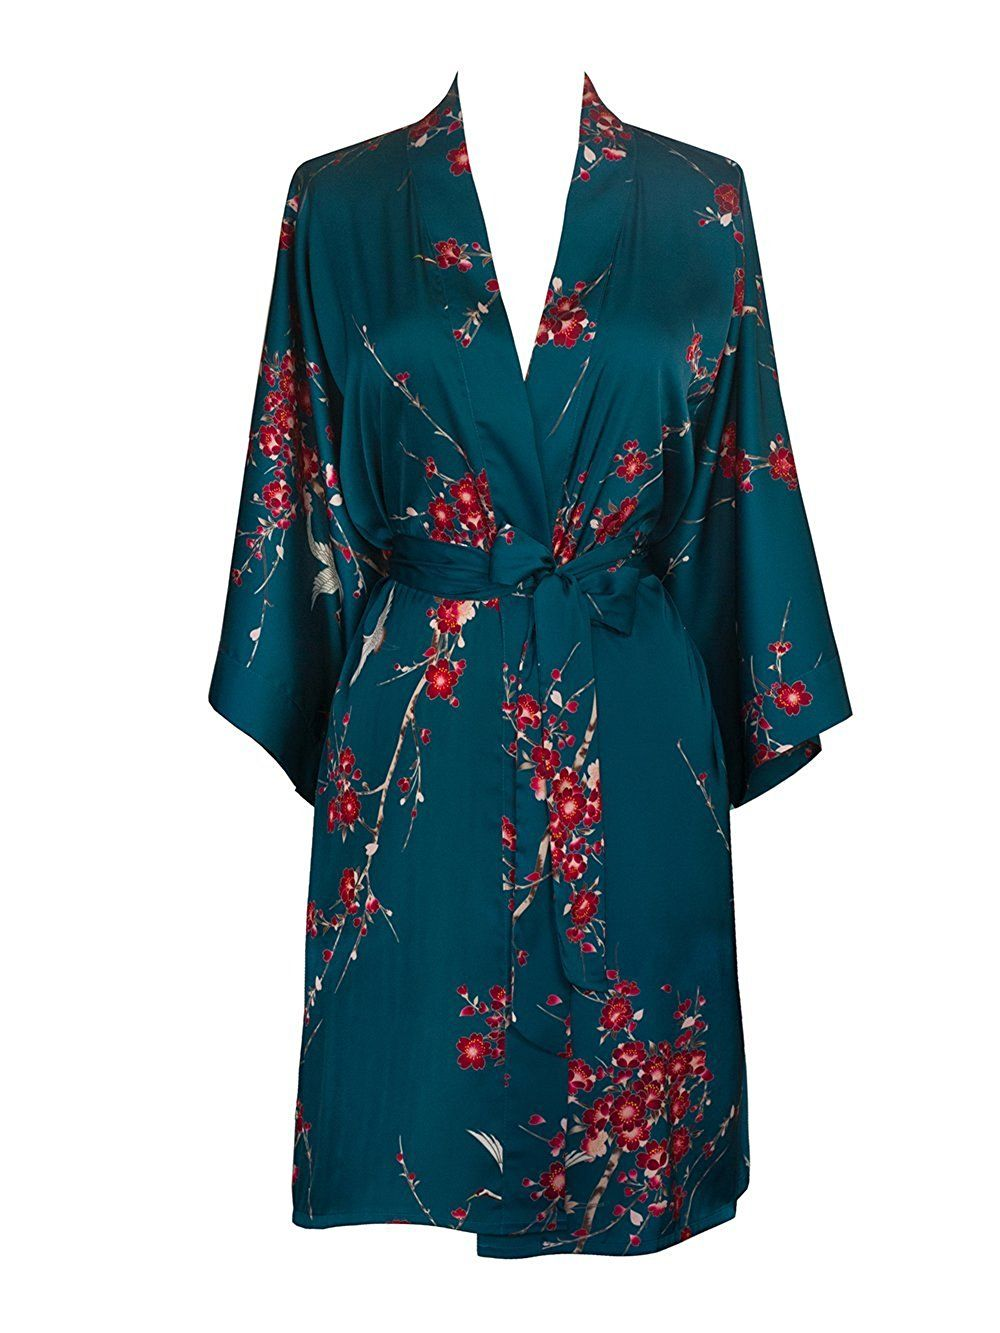 Old Shanghai Women s Kimono Robe Short - Watercolor Floral fbd9638fe